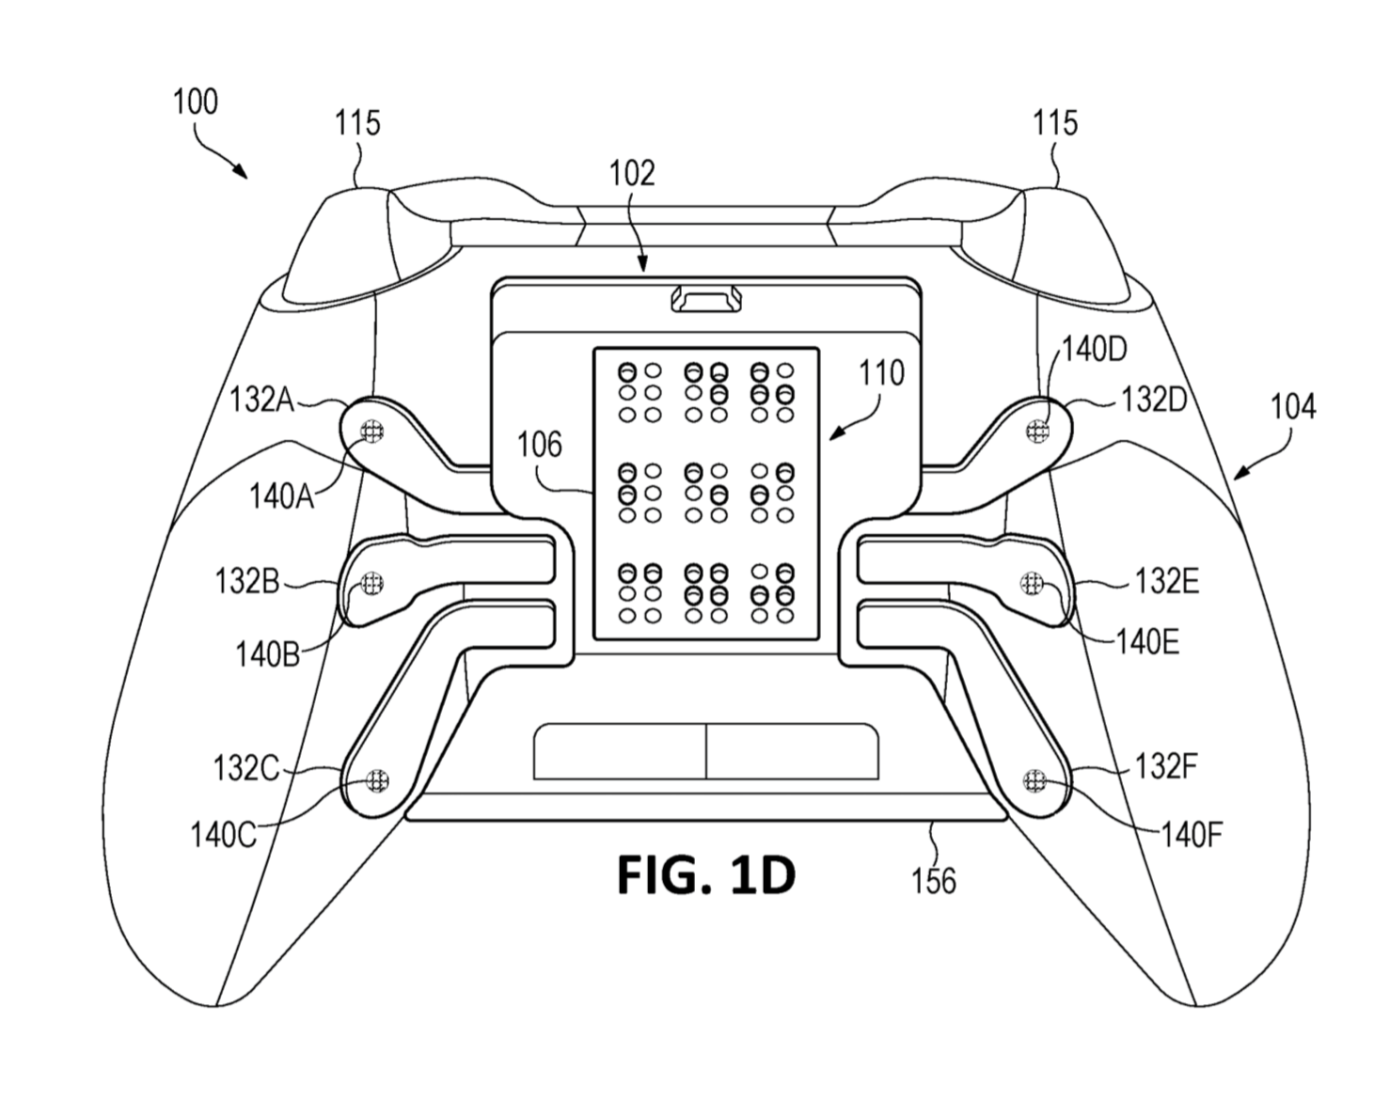 Microsoft files patent for controller accessory with Braille input and output